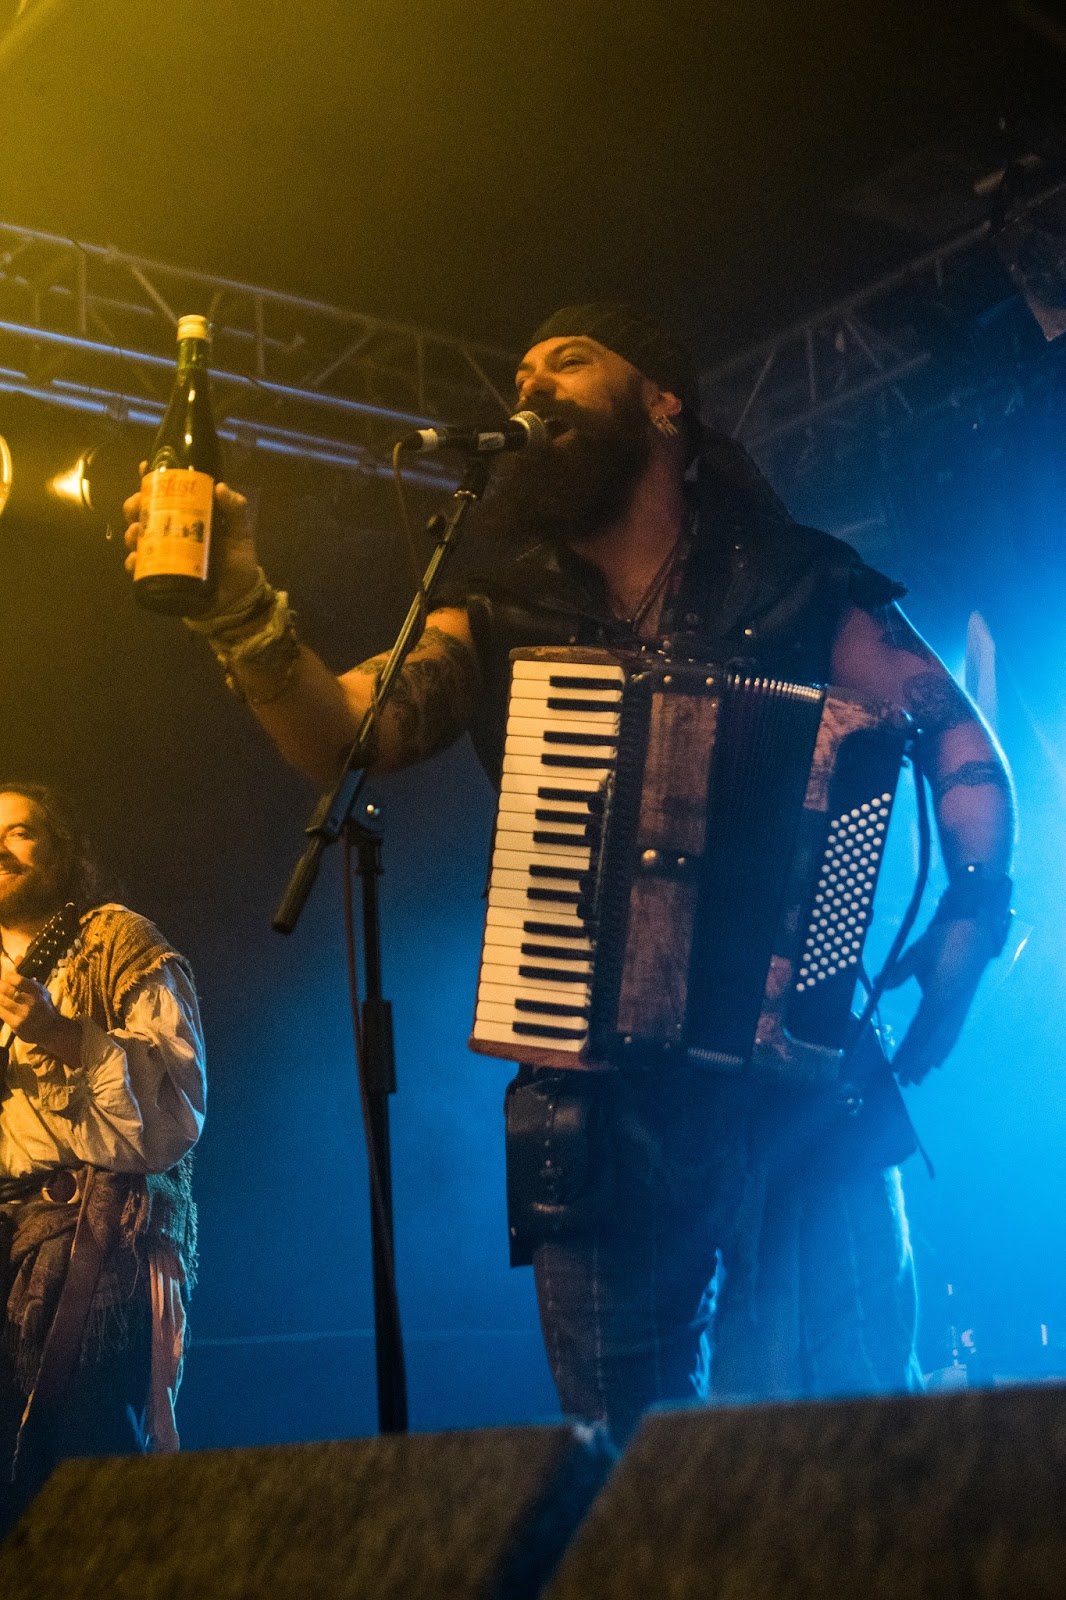 Belfast Metalheads reunited: LIVE REVIEW: Party at